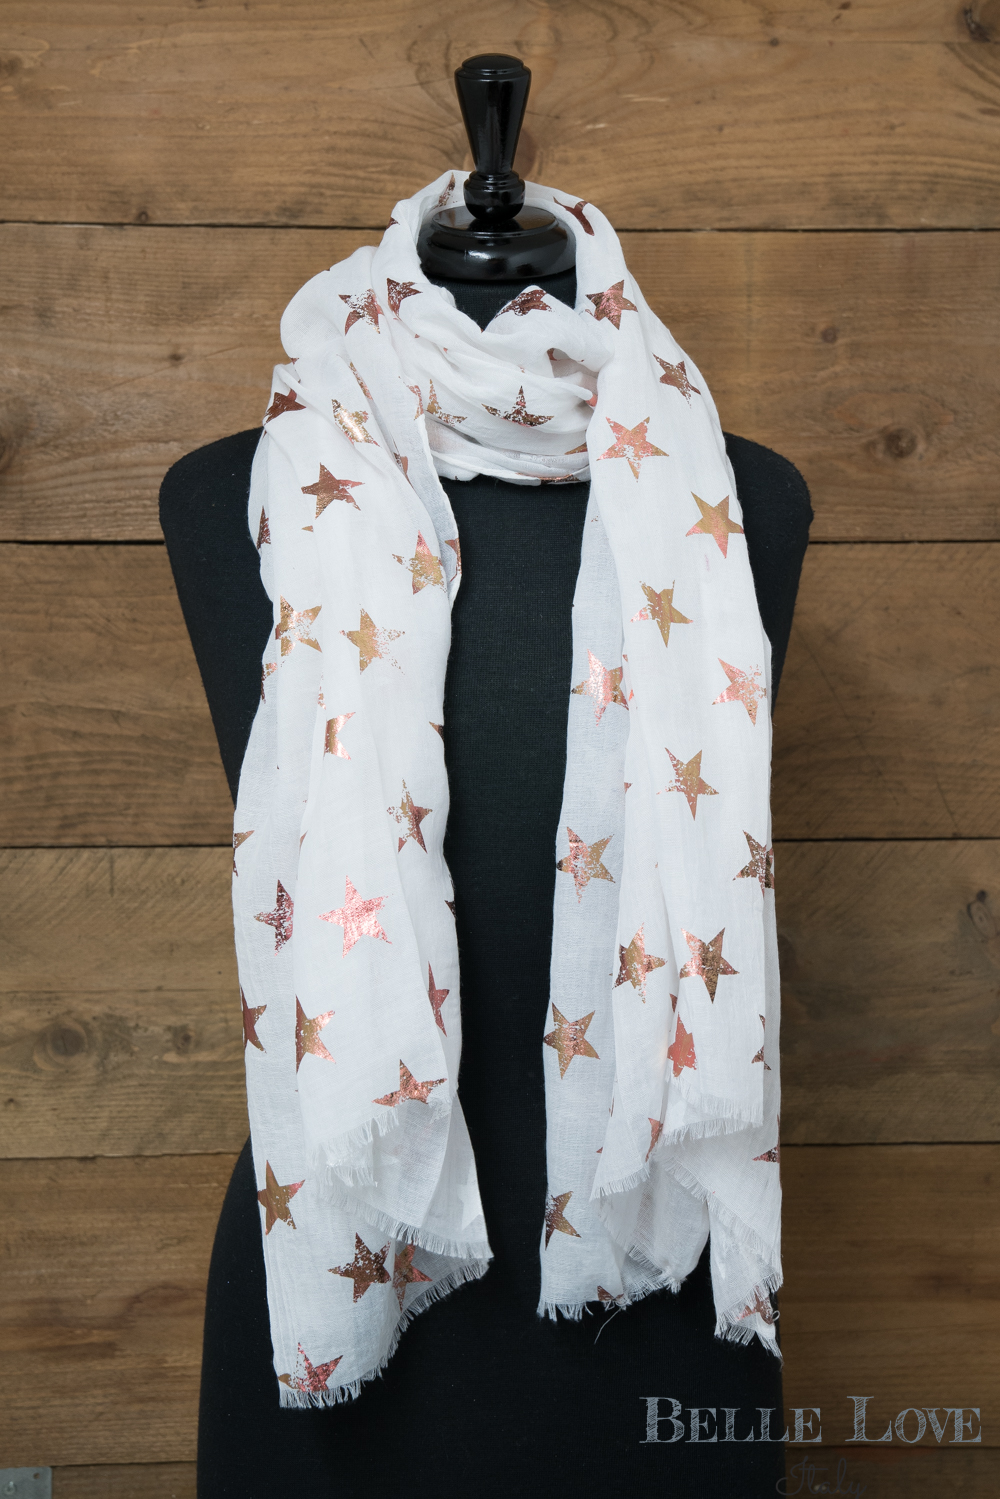 Belle Love Italy Antique Stars Scarf